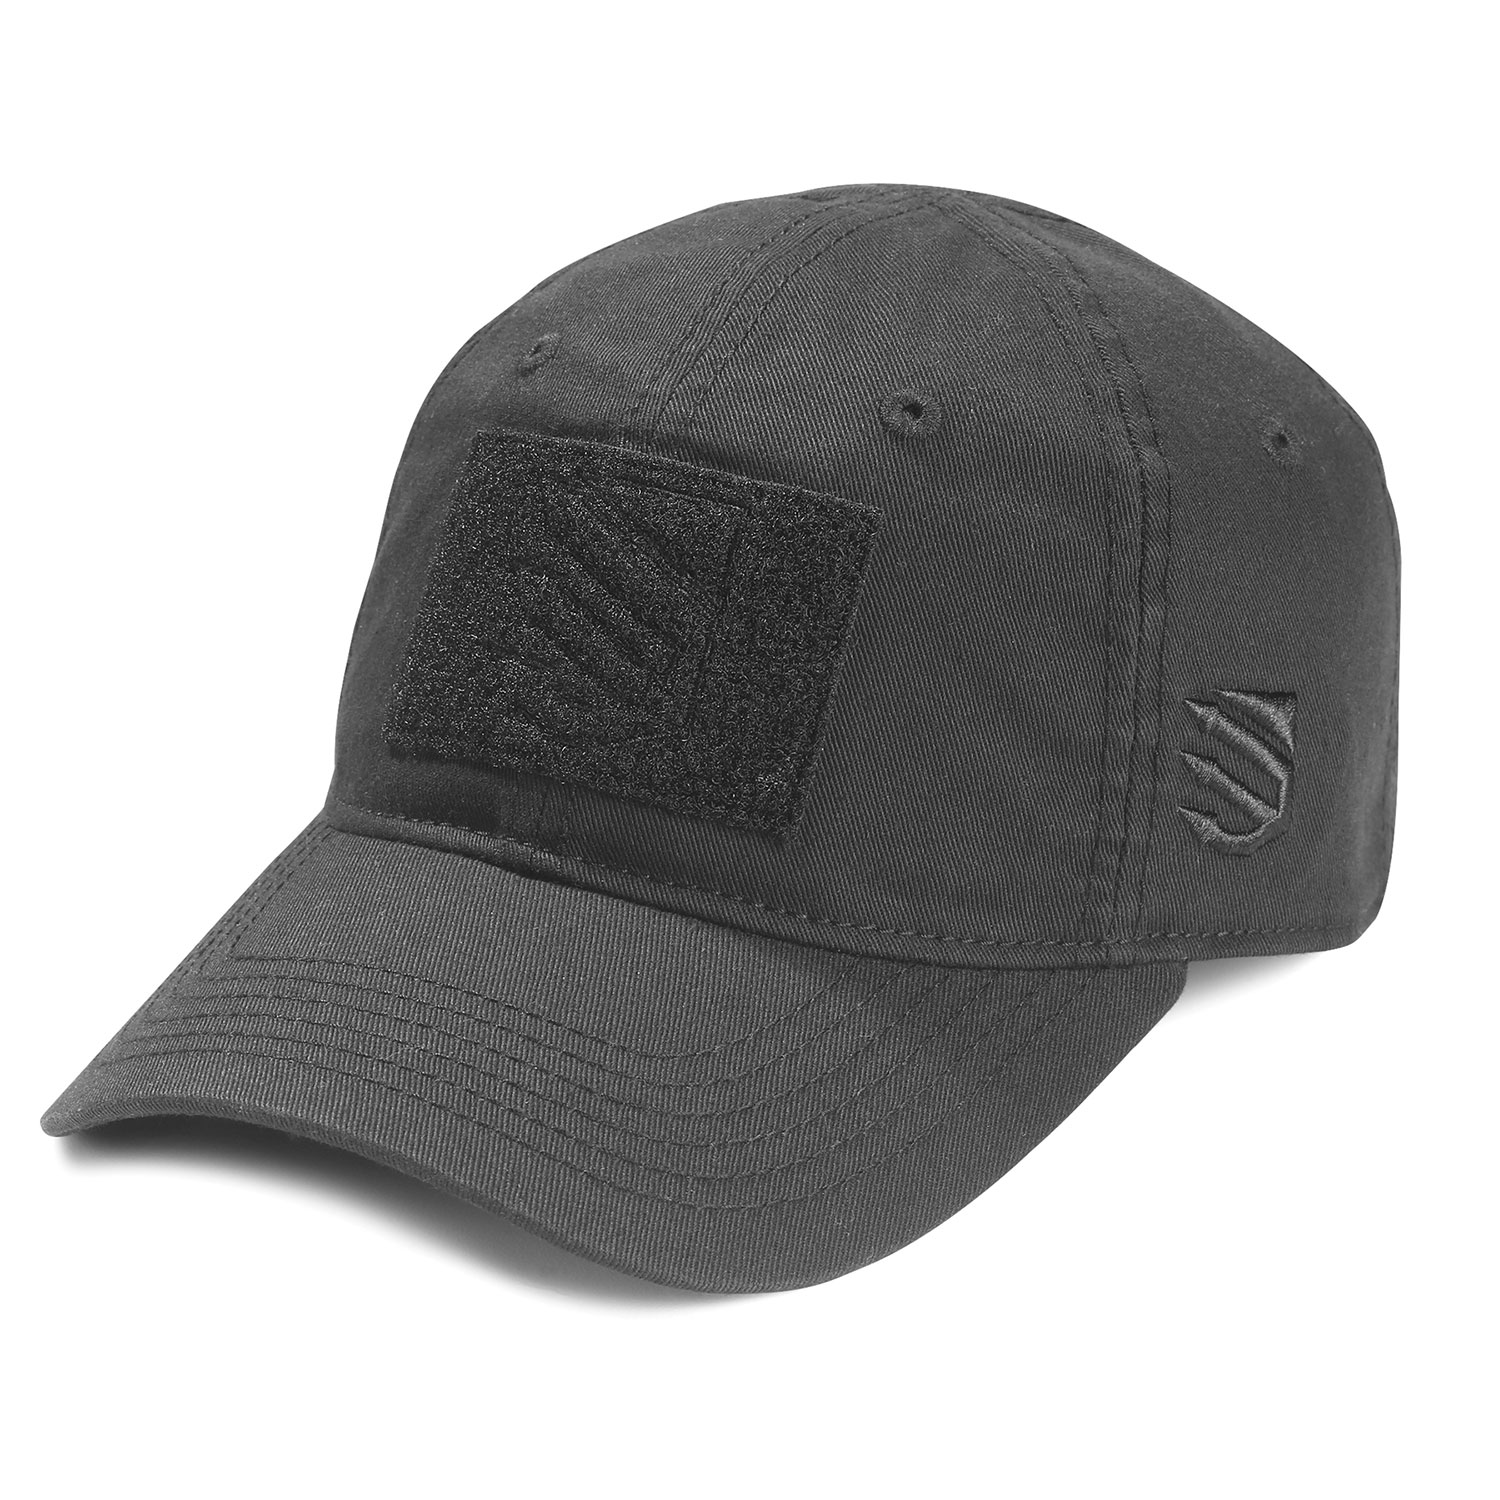 BLACKHAWK! Tactical Cap